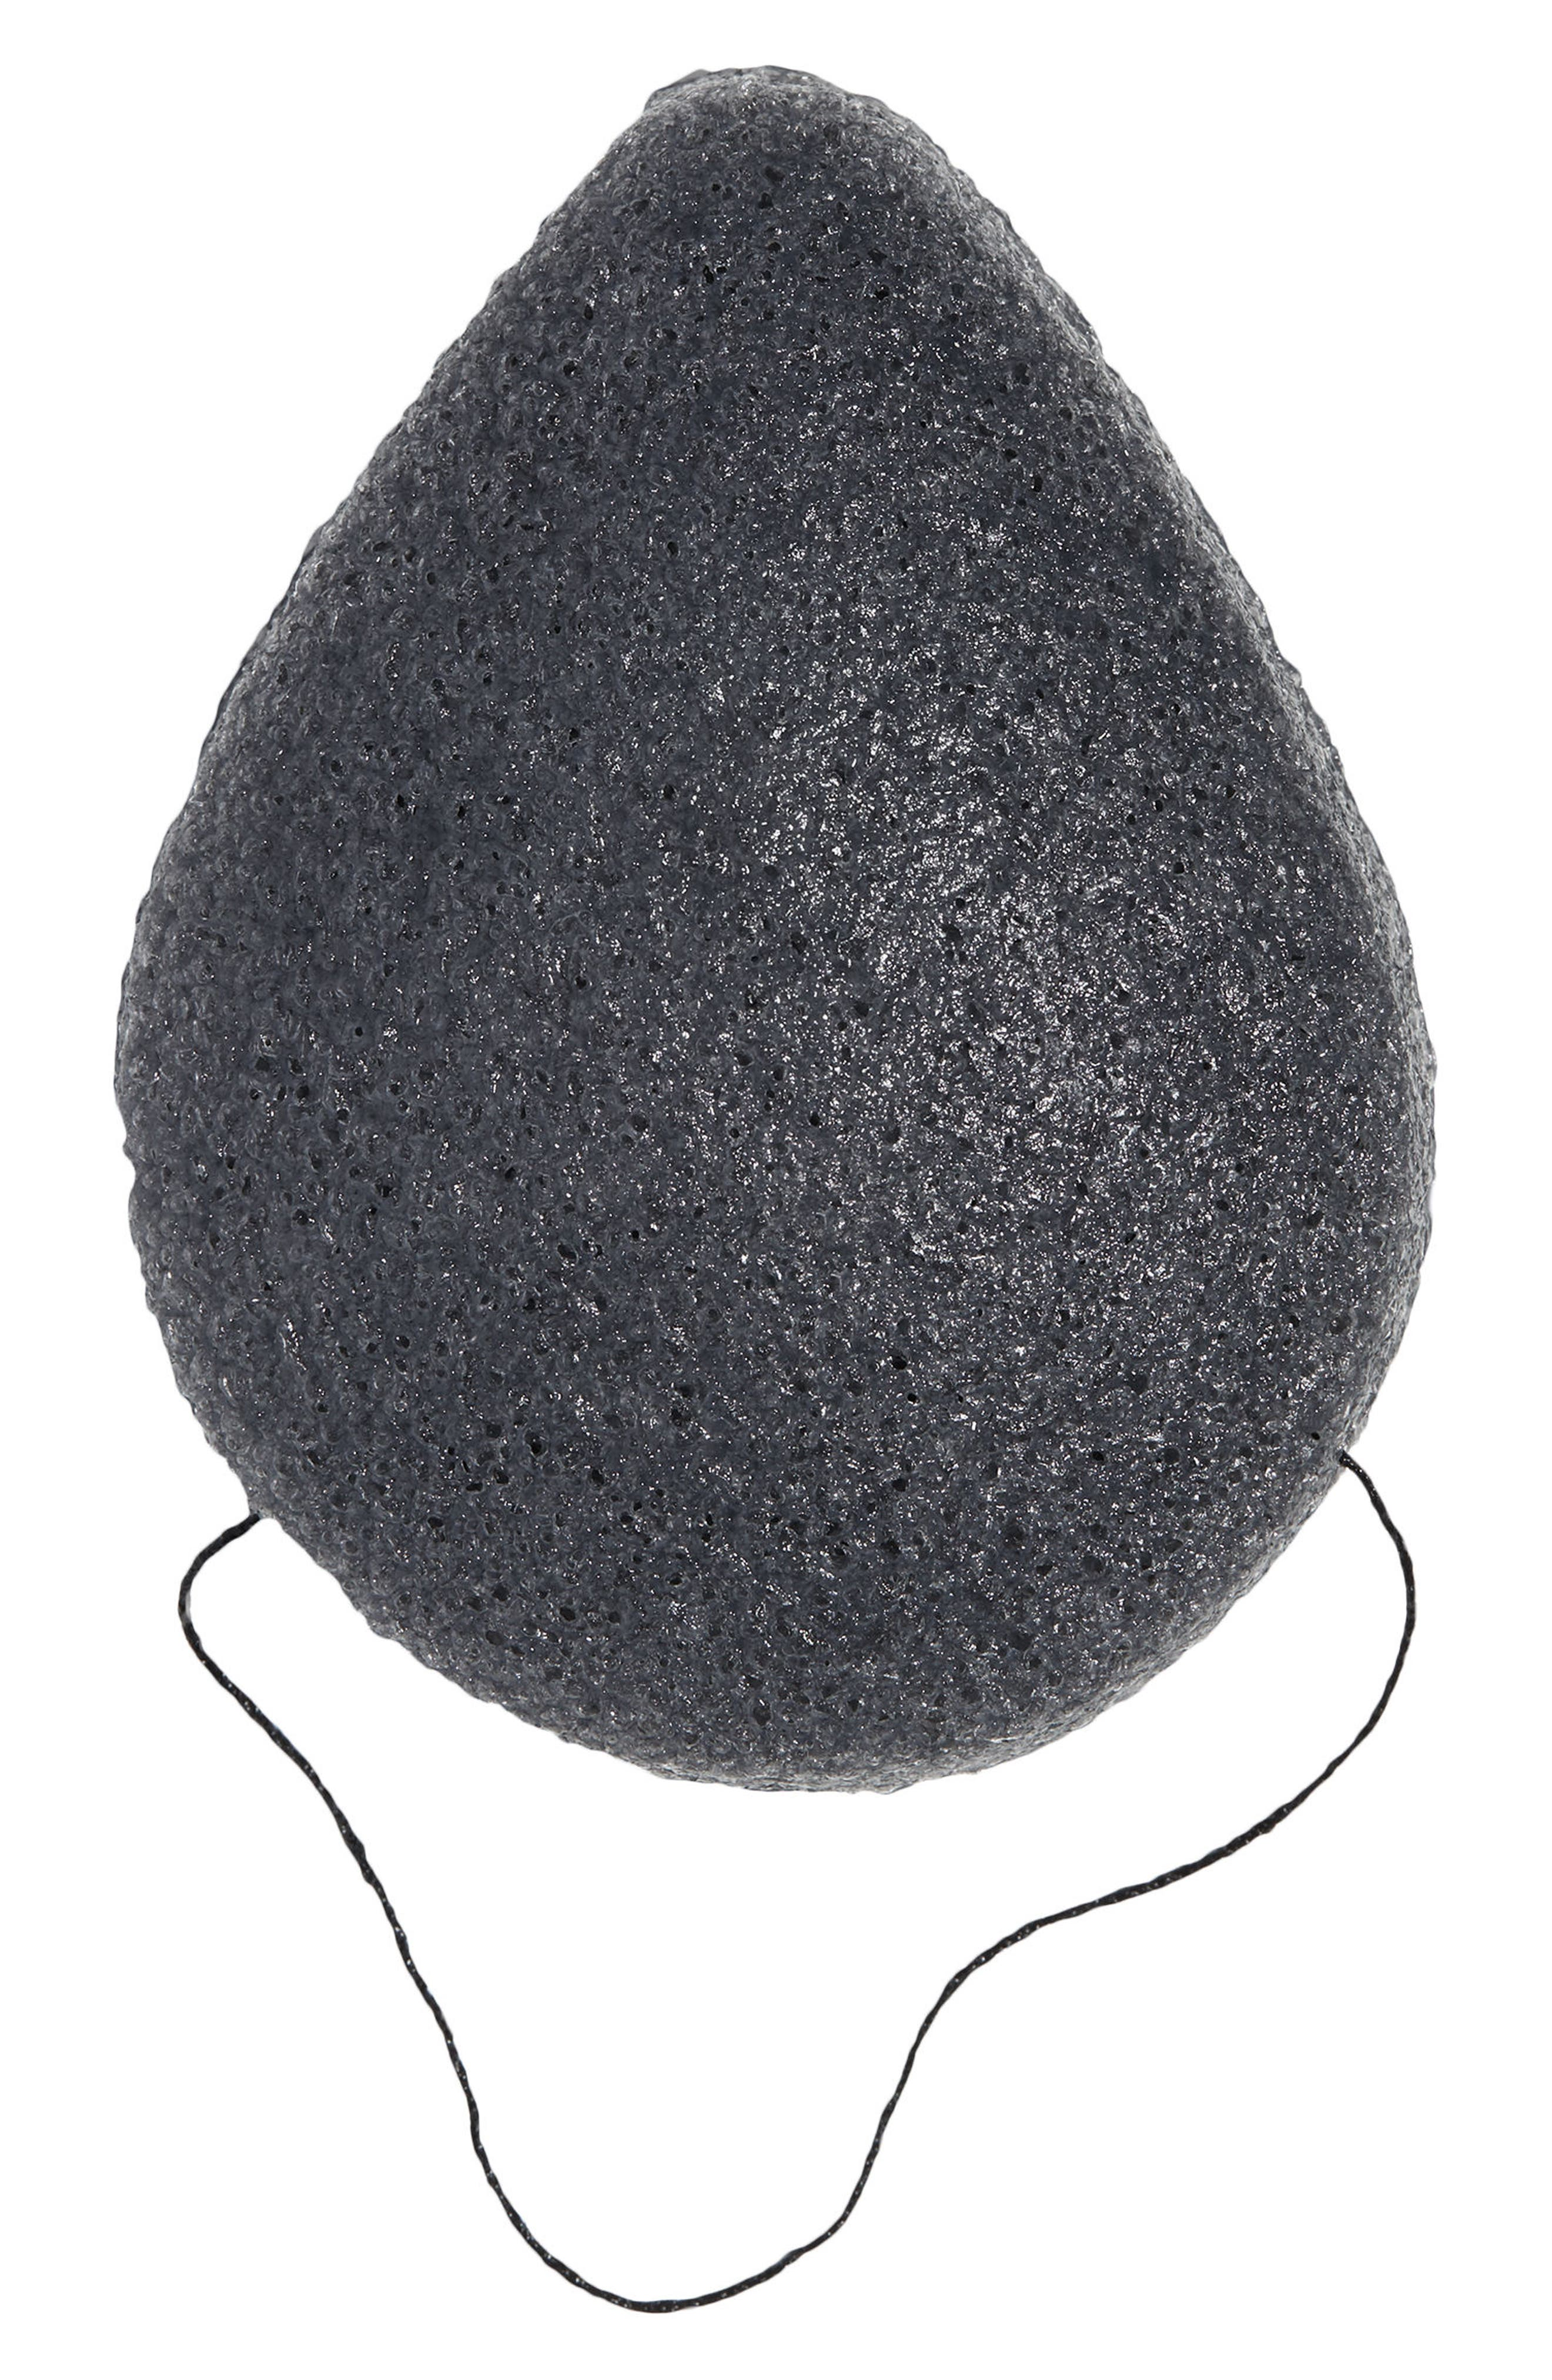 Julep Konjac Cleansing Sponge,                             Main thumbnail 1, color,                             No Color